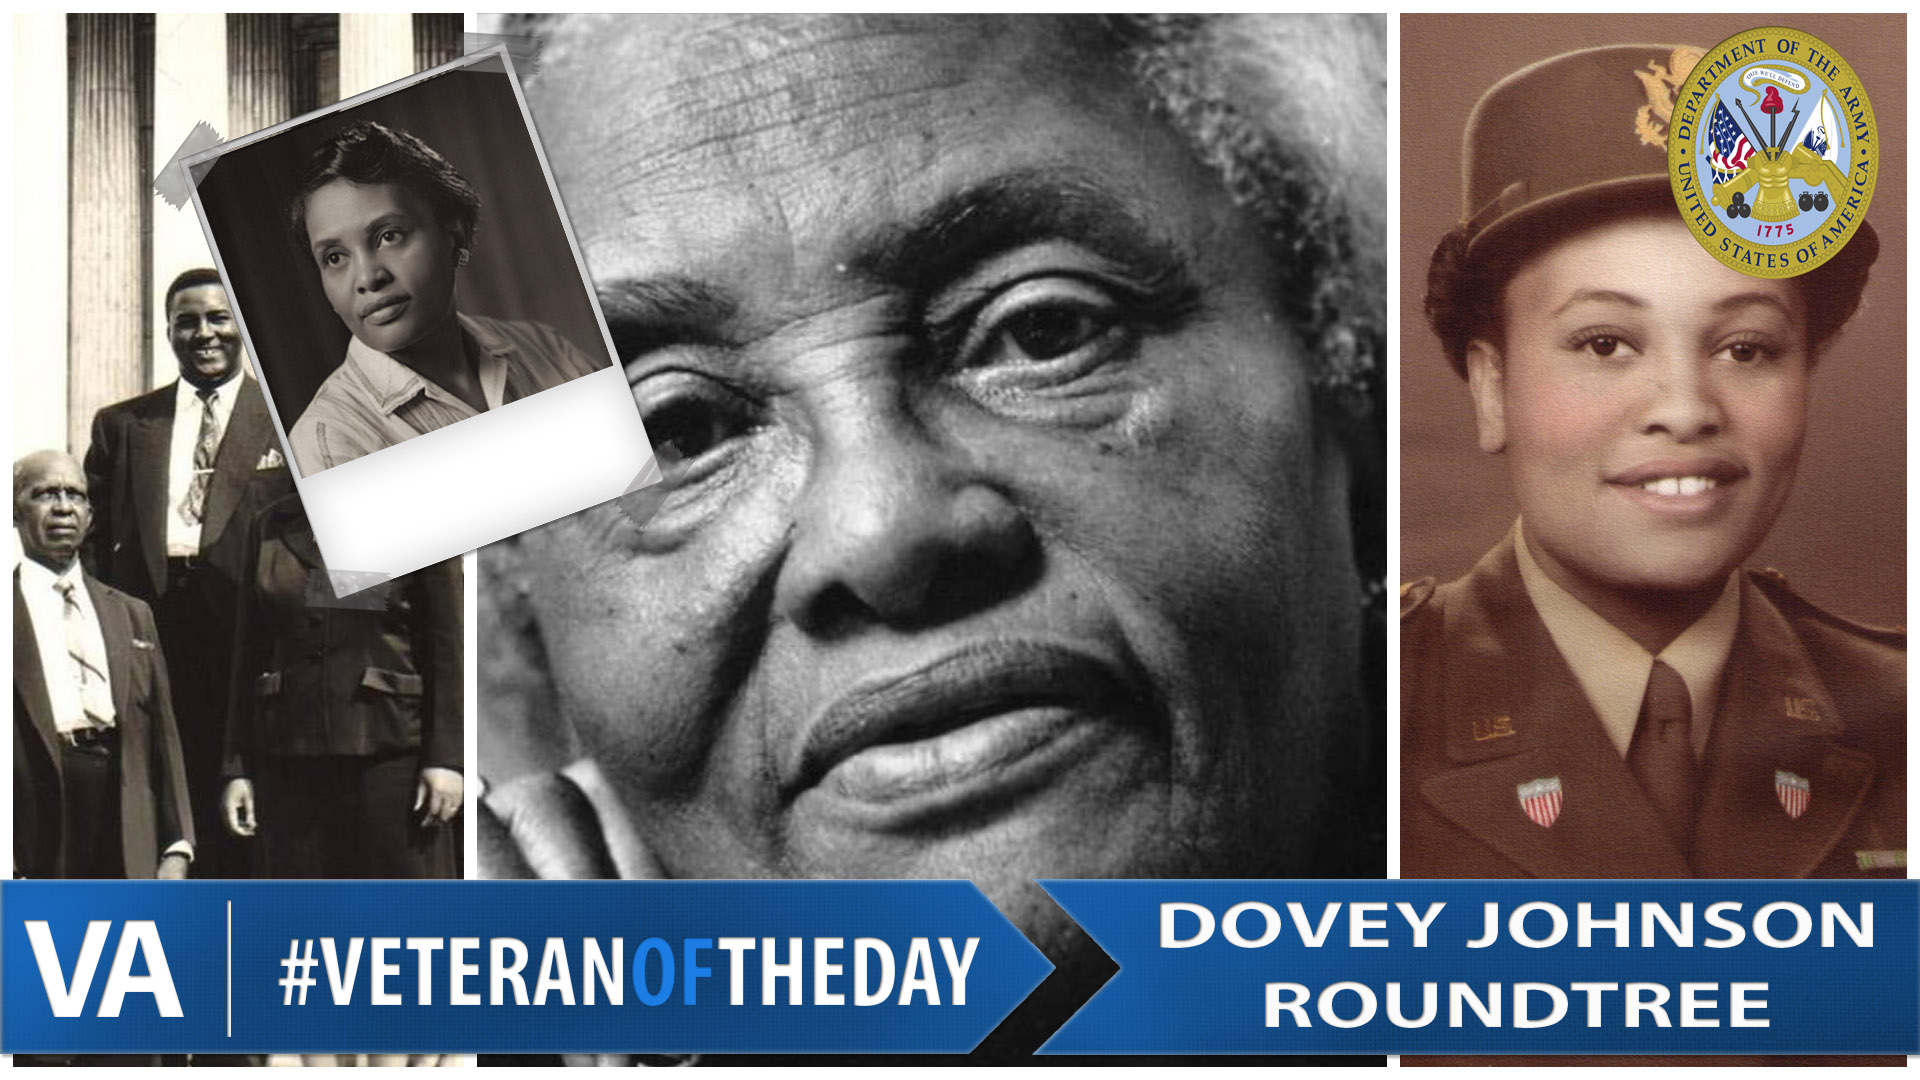 8e73946c85 VeteranOfTheDay Army Veteran Dovey Johnson Roundtree - VAntage Point